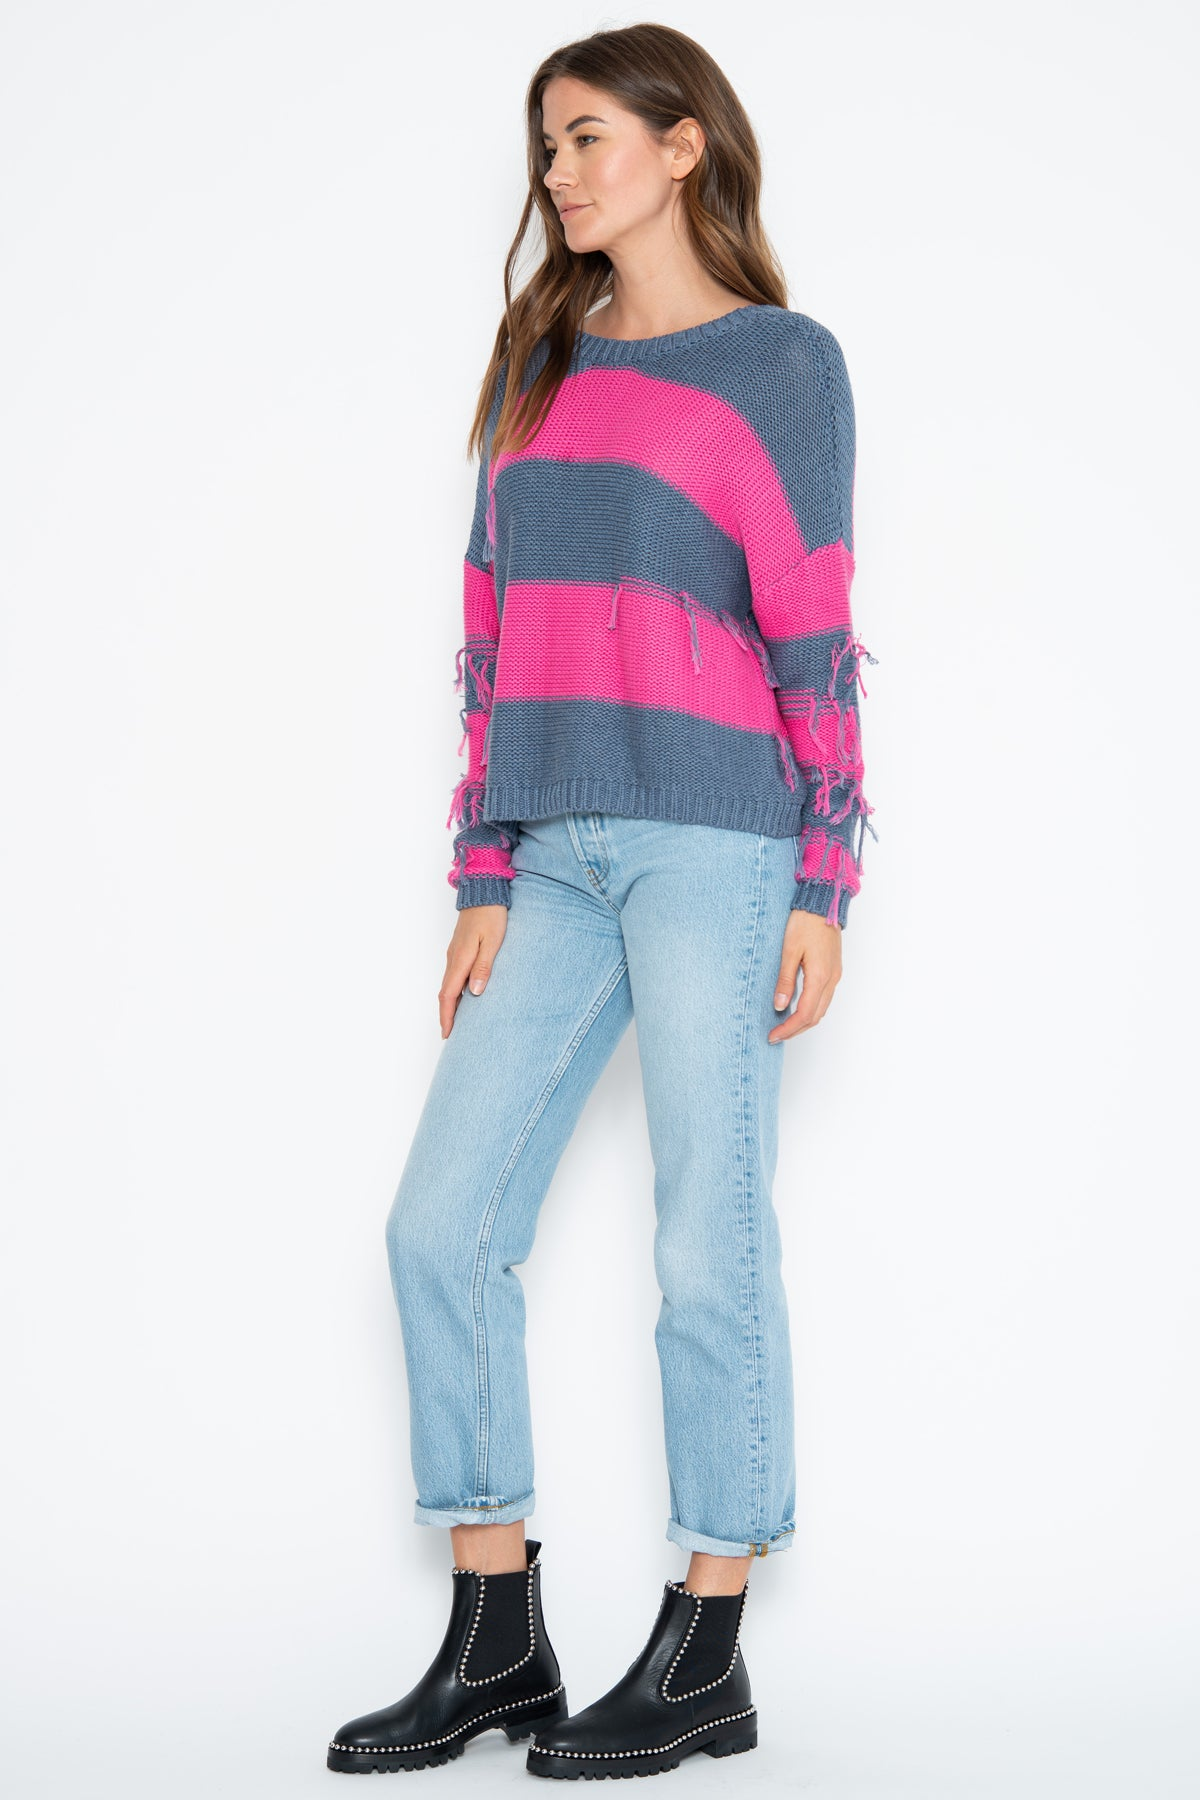 Lexie 2way Pullover - Denim/Pink Shock Combo